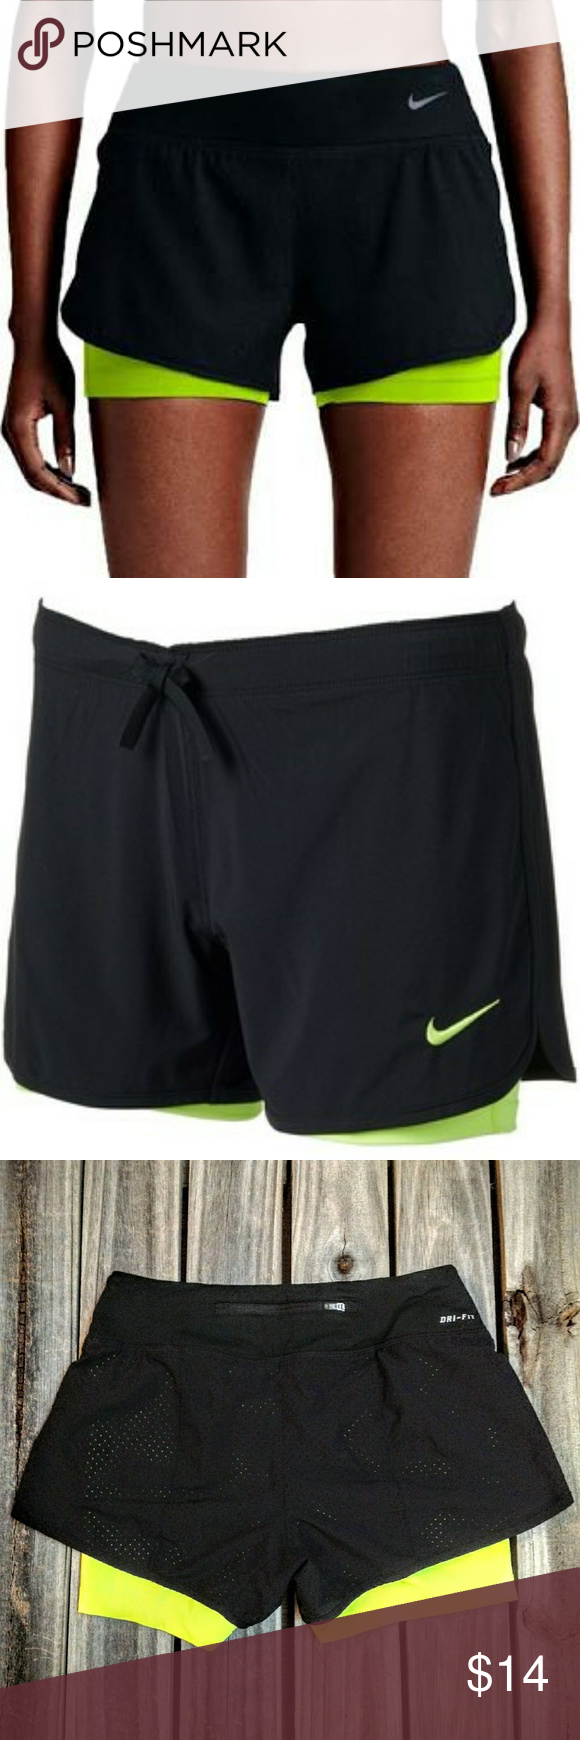 otro Instituto Disfraz  Nike Dry Fit Rival 2-in-1 running shorts XS black | Running shorts, Clothes  design, Gym shorts womens